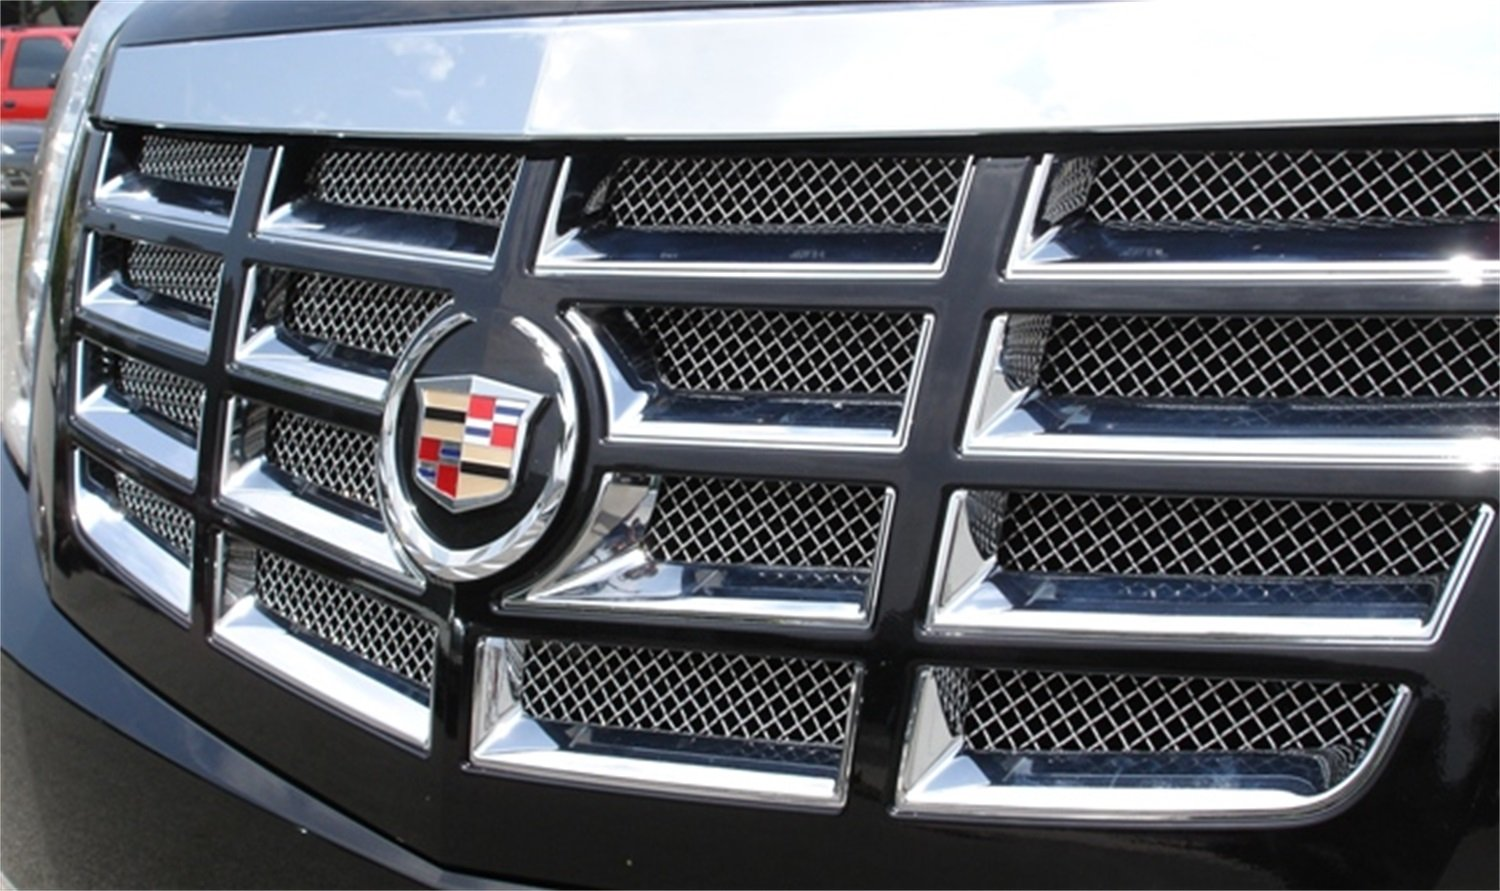 TRex Grilles 54195 Upper Class Small Mesh Stainless Polished Finish Grille Insert for Cadillac Escalade T REX